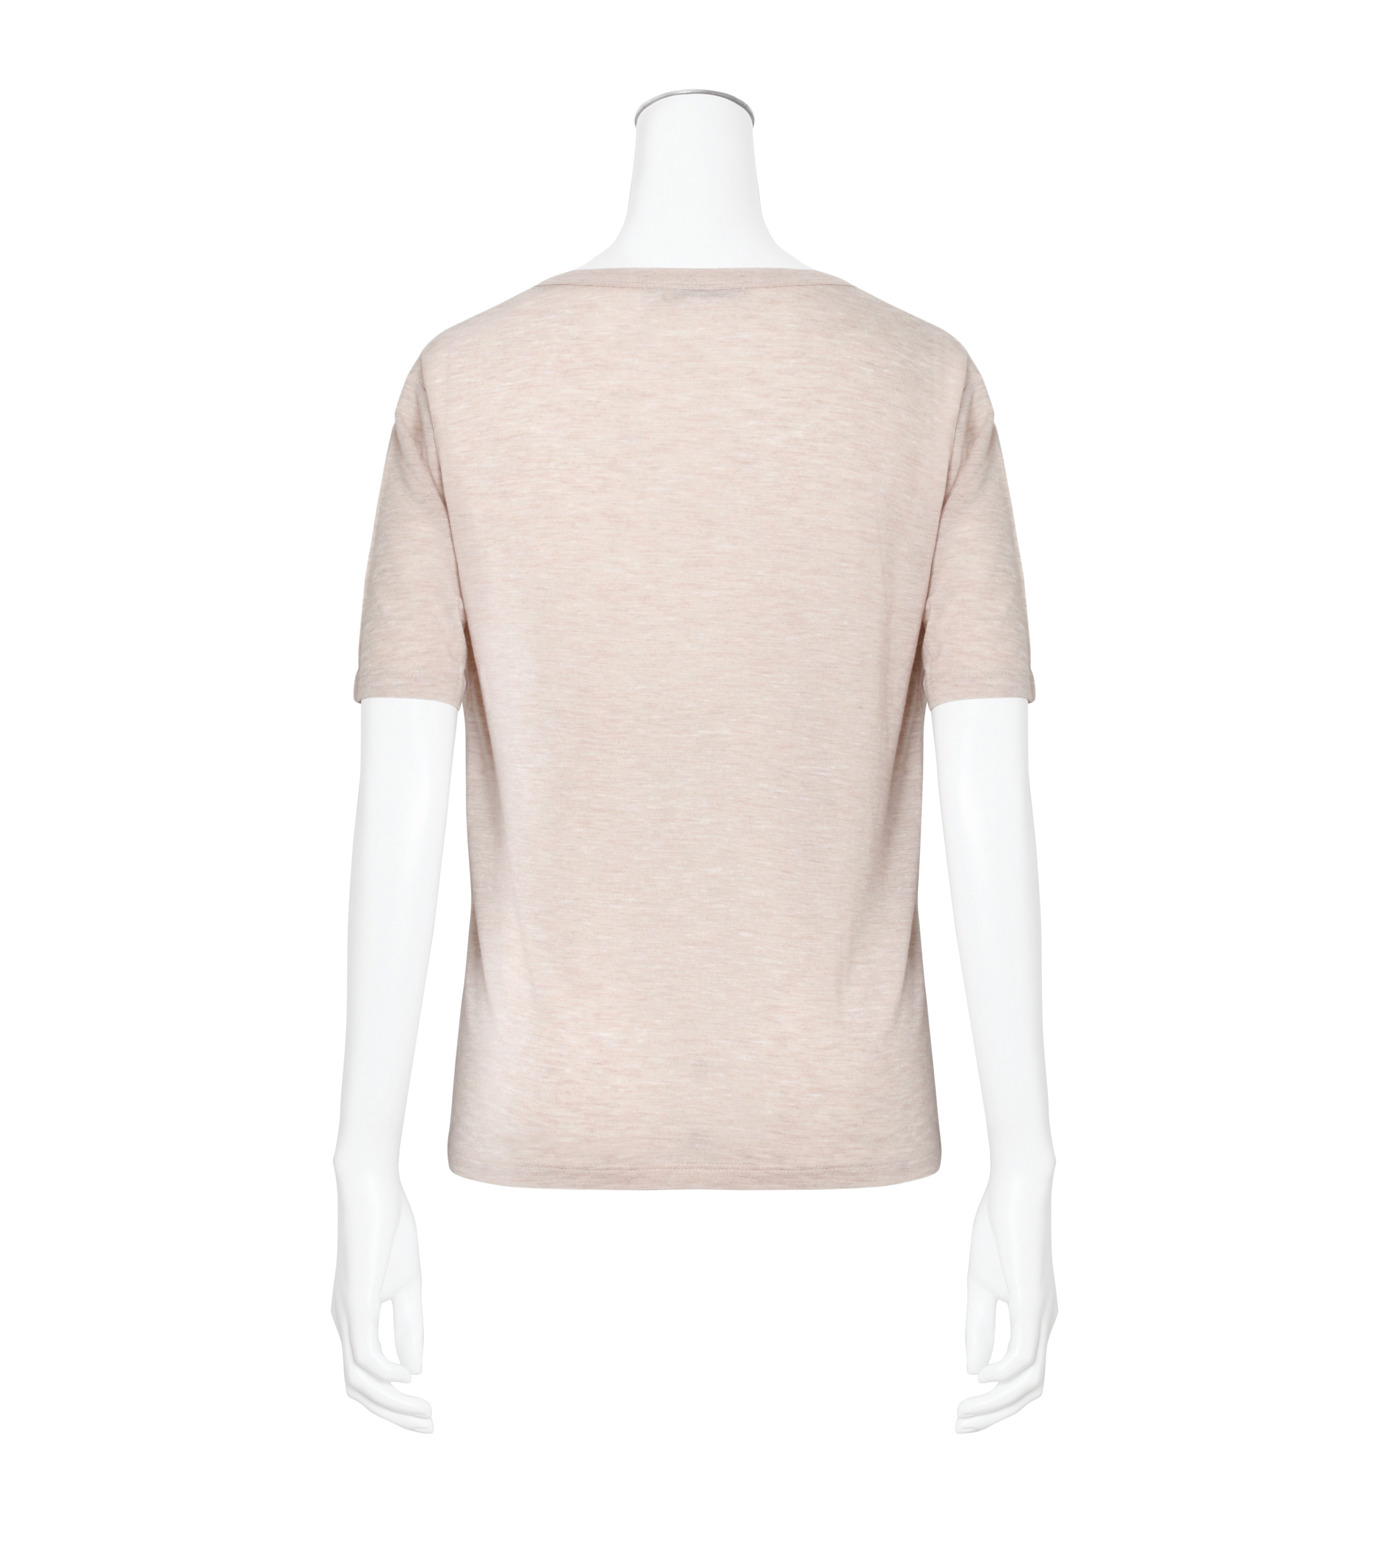 T by Alexander Wang(ティーバイ アレキサンダーワン)のCropped T w/Pkt-LIGHT PINK(カットソー/cut and sewn)-400203R17-71 拡大詳細画像2